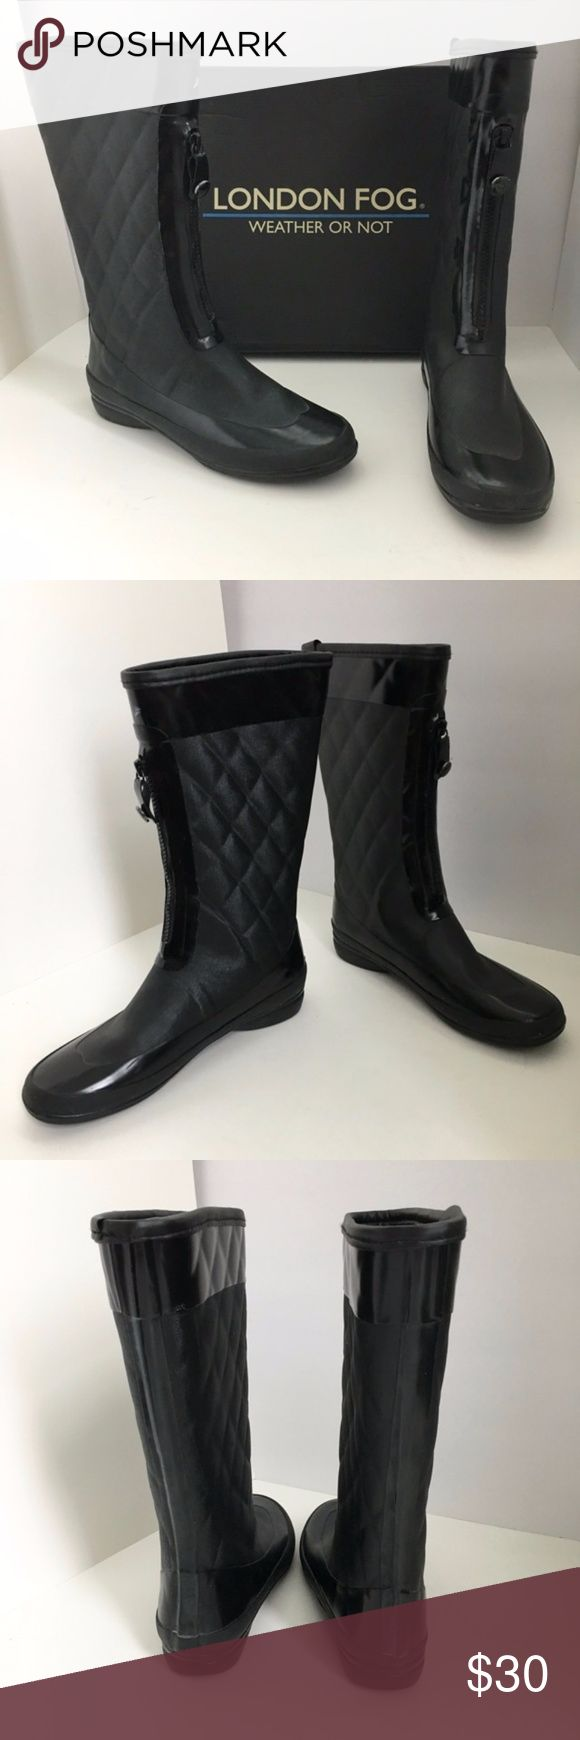 London Fog Quilted Tribeca Rain Boots, Black The Tribeca boot will keep your feet dry and cozy in any weather.  It features patent trim, quilted shaft pattern and a partial front zip for easy access.  Heel height 1 inch.  Shaft height 11 inches.  100% rubber upper.  Size is 8M, but fit a normal 8.5 wearer also.    Lightly worn, in good condition (see photos).  Original box included.  🎈 Offers considered ✖️  No trades 🍍 Thanks for shopping.  Check out more items in my closet for a bundle…